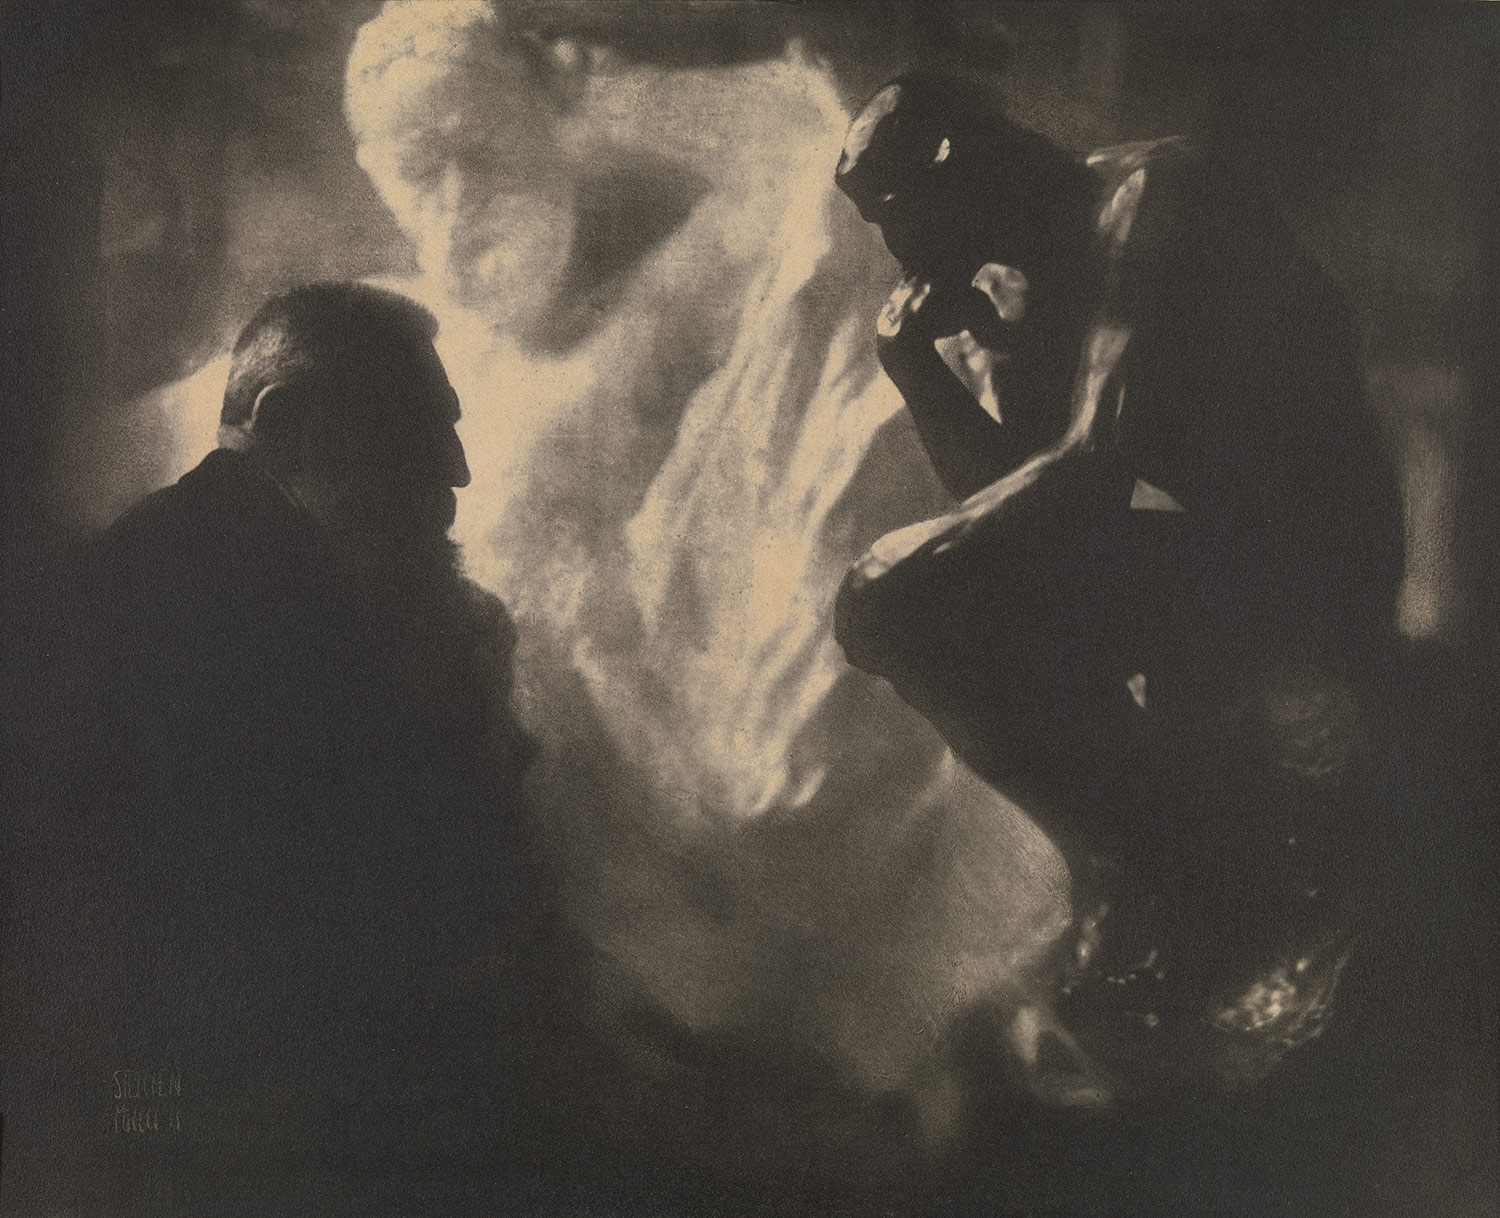 edward steichen essay Edward steichen is one of the world's advocates of picture taking he is besides best remembered for his great parts during the universe war period.